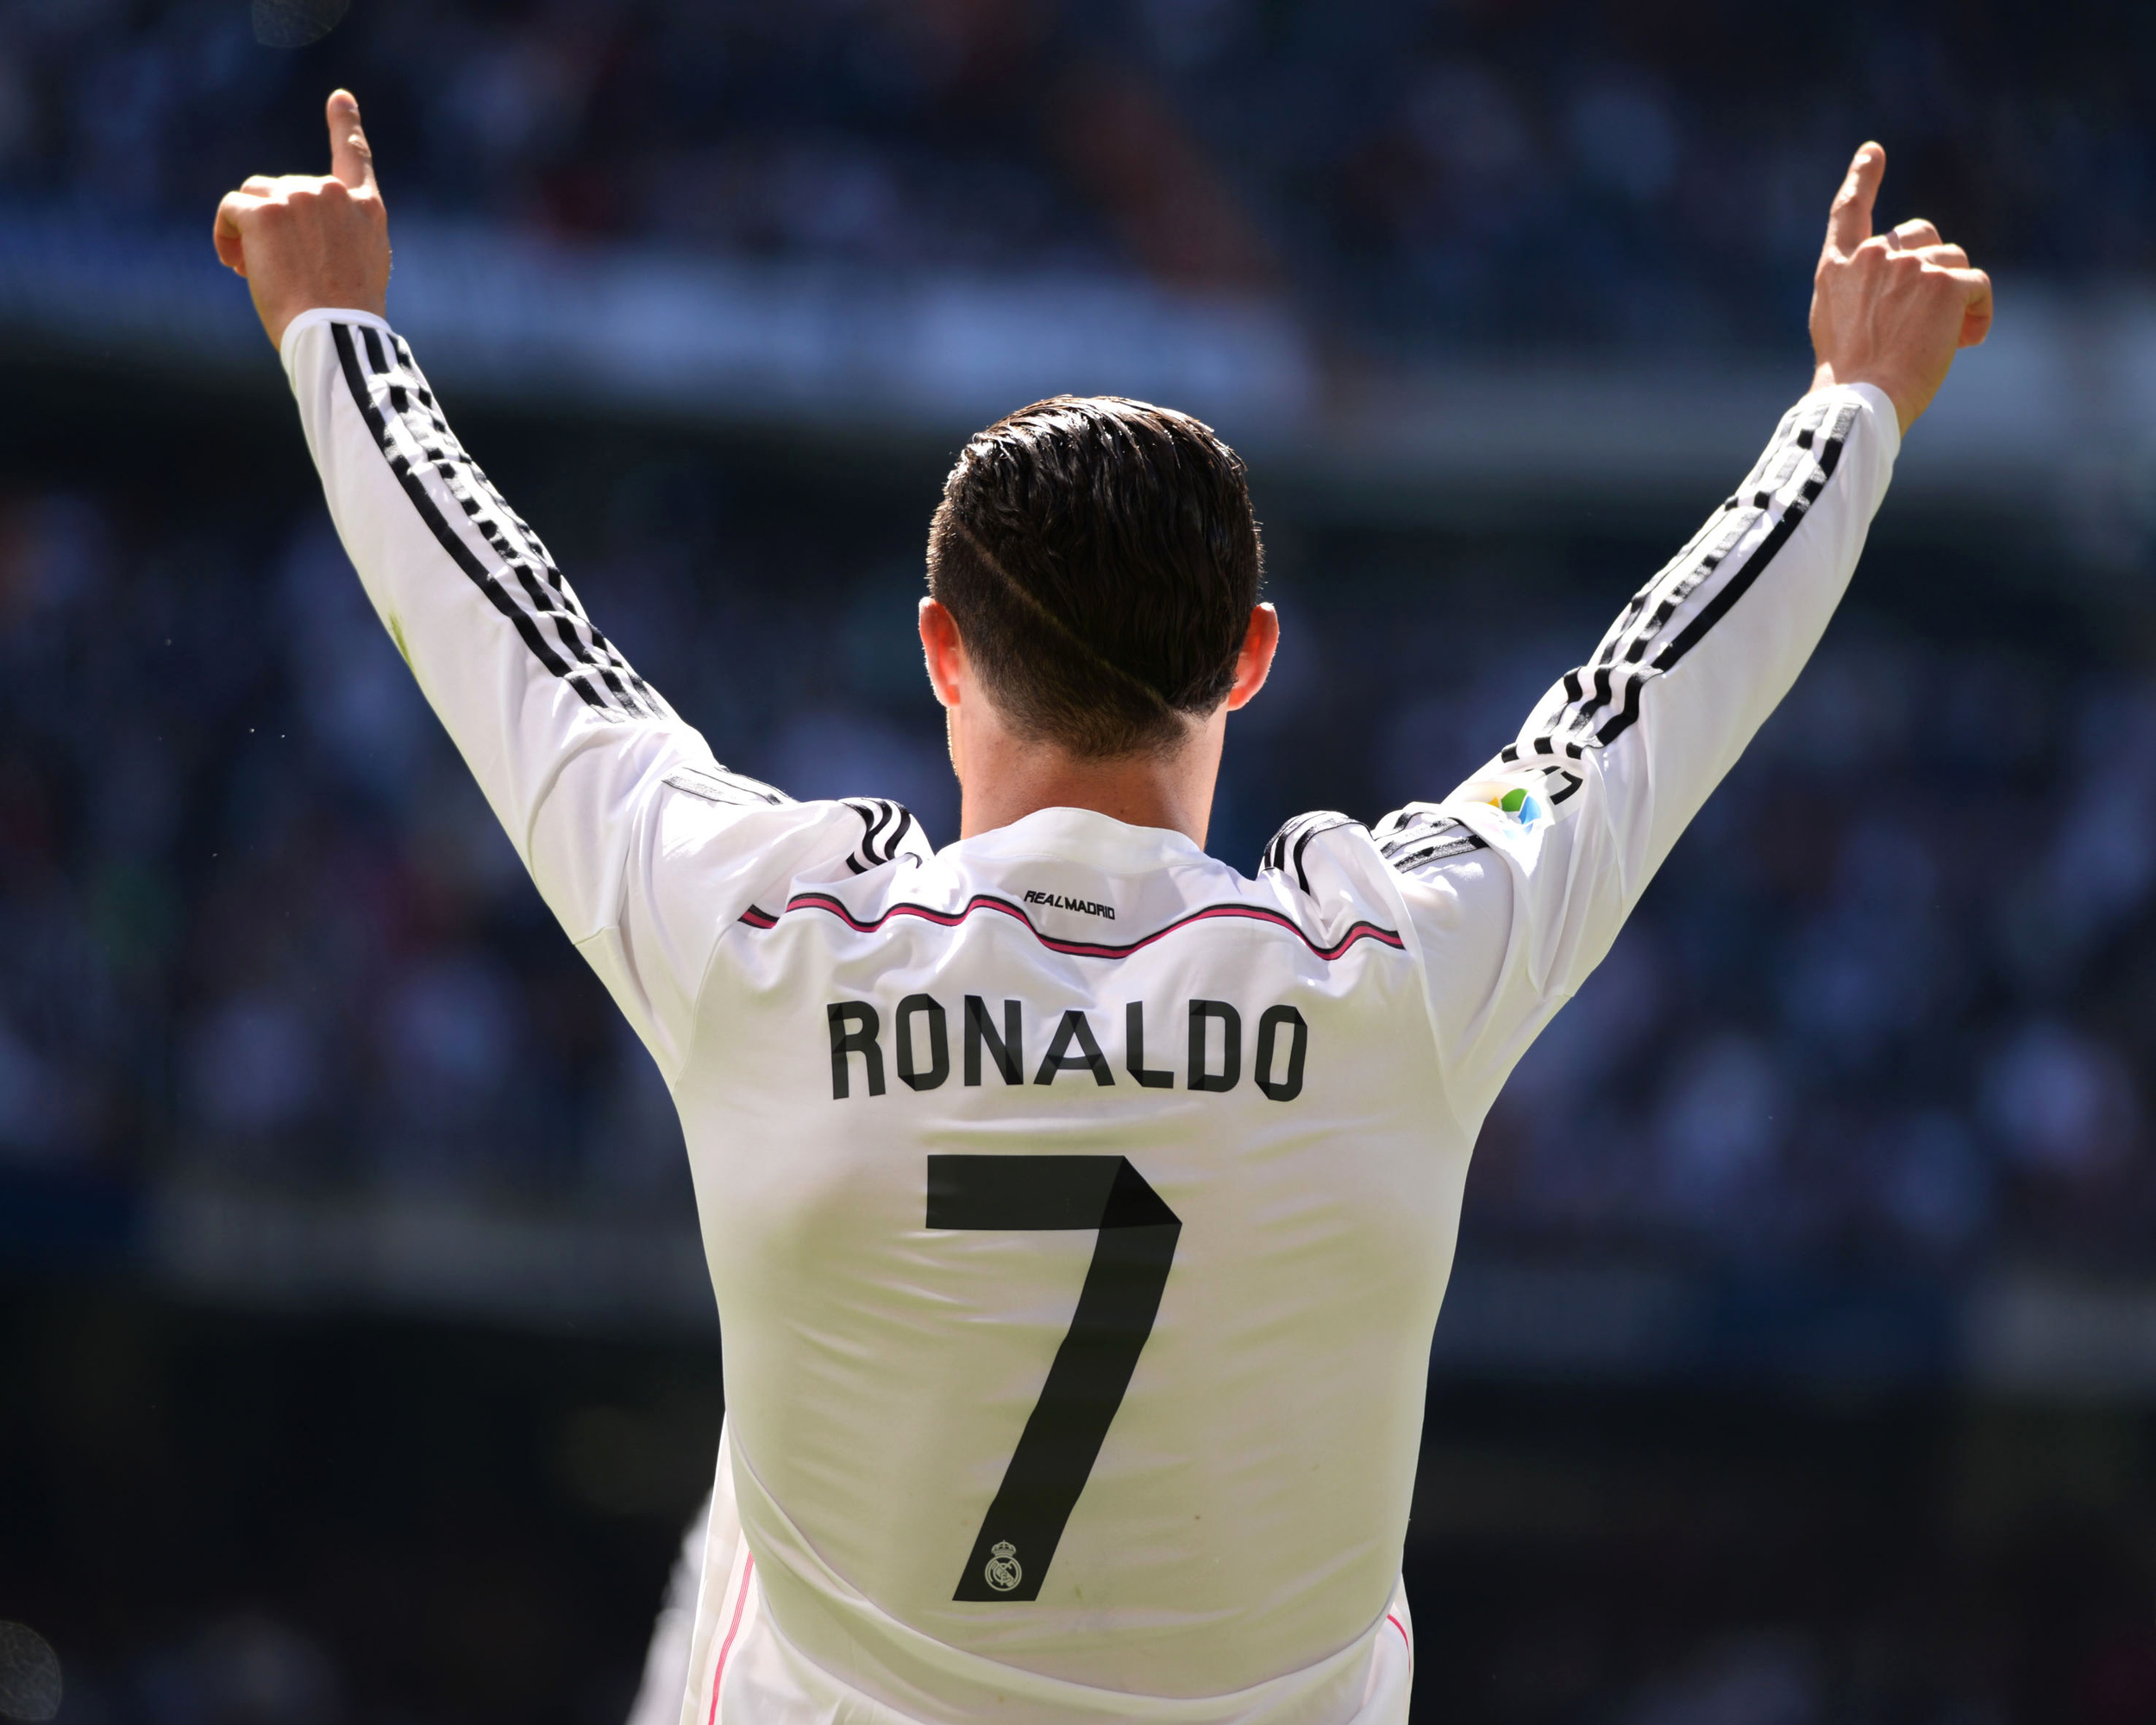 Real Madrid's Cristiano Ronaldo is the most popular sportsman in the world. With close to 34.5 million followers on Twitter and over 100 million likes on Facebook, the Portuguese superstar's every move is in the public's eye. Image supplied by Action Images/Gregorio Lopez